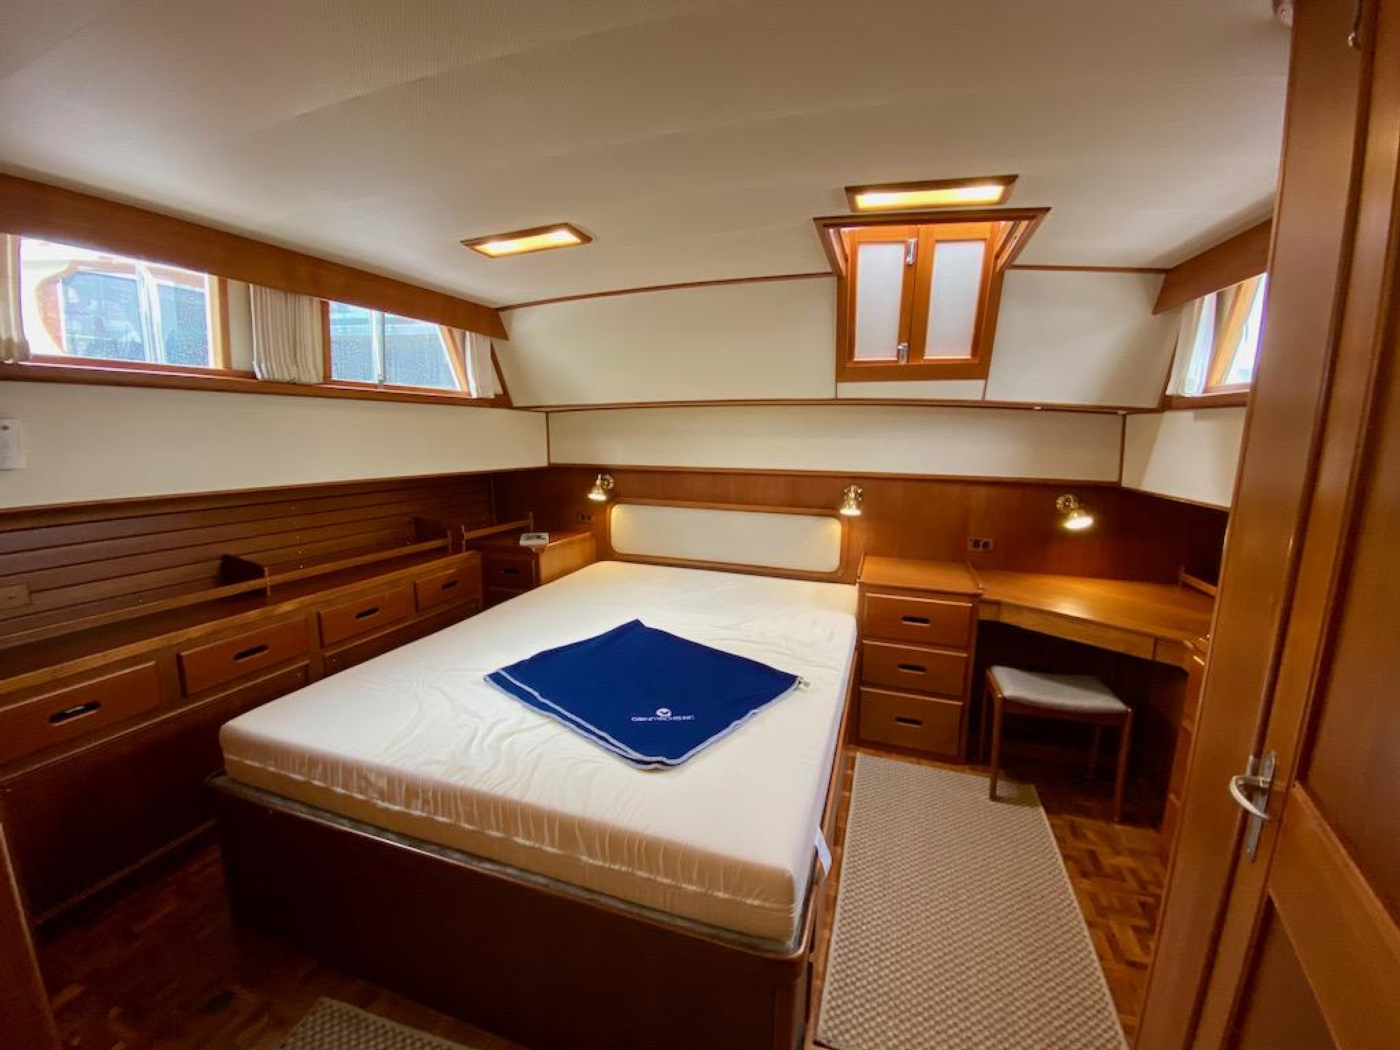 1998 Grand Banks 42 Classic, Aft cabin overview